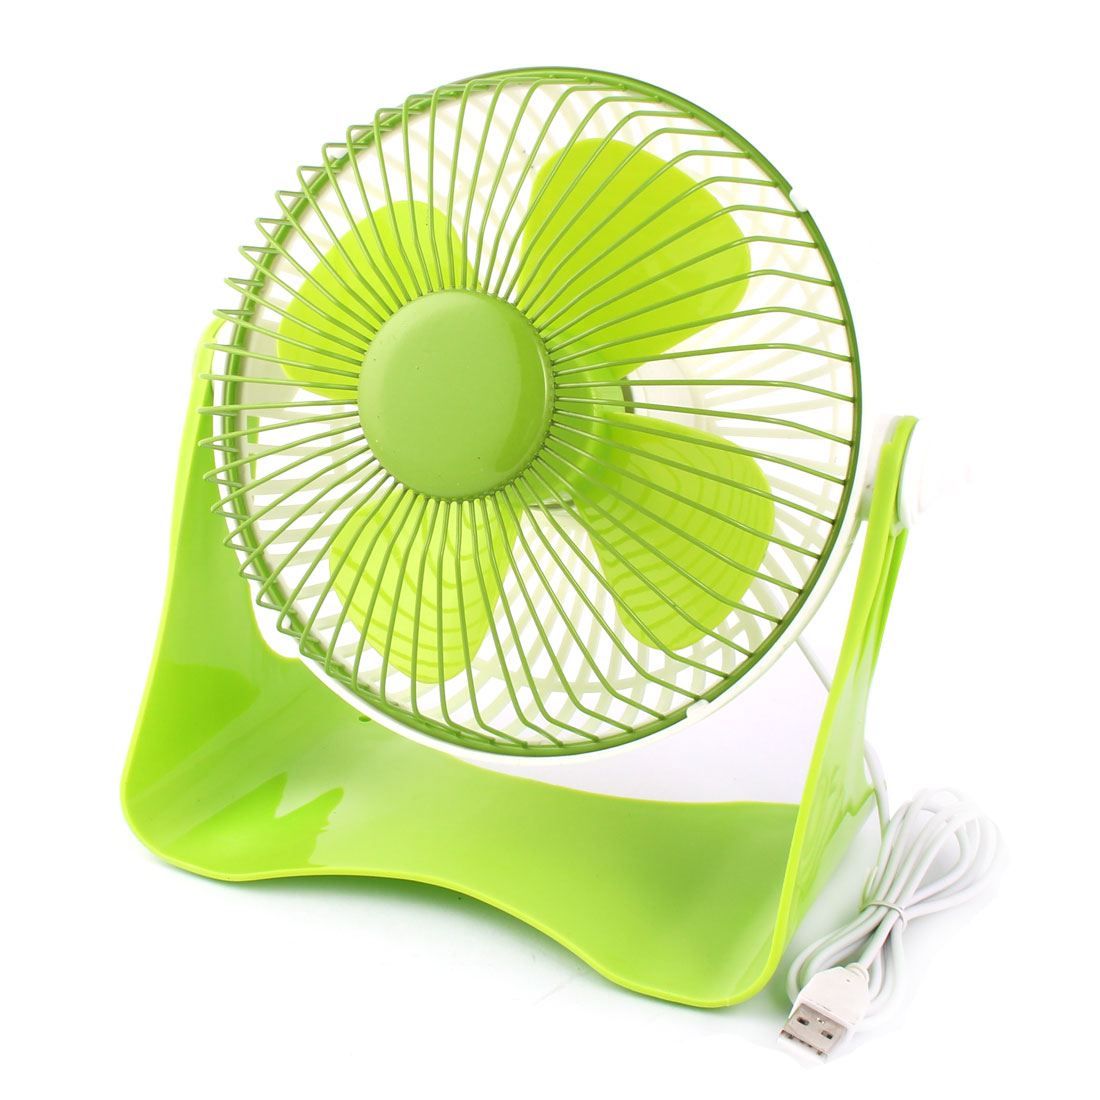 Computer Notebook Laptop U Shaped Portable USB Mini Cooler Cooling Fan Green White